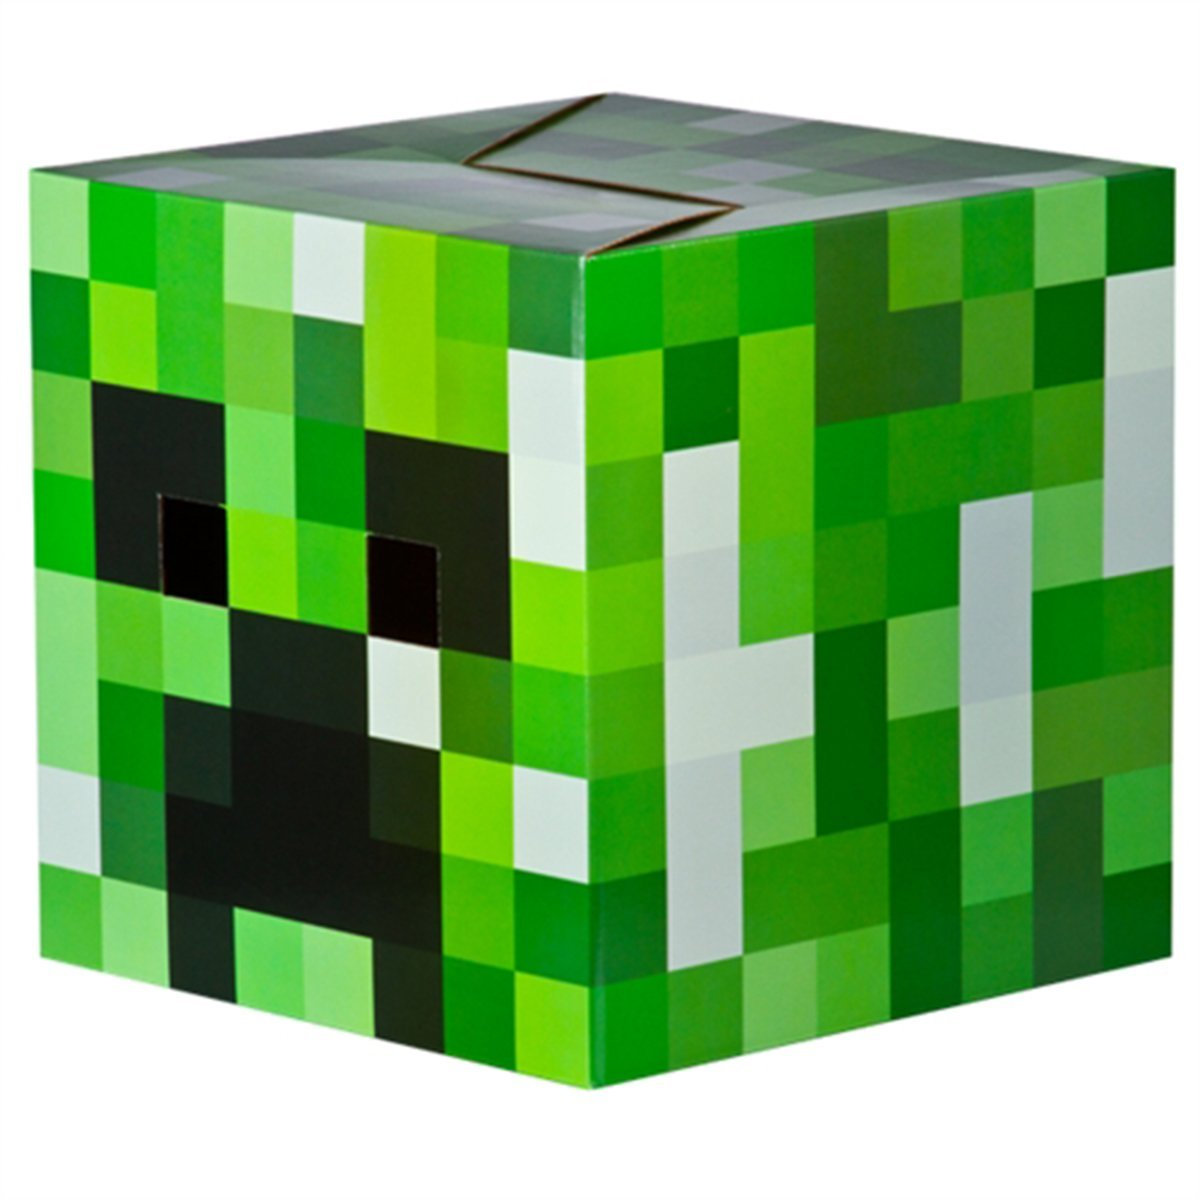 Diy halloween skull decorations - Be A Minecraft Creeper This Halloween 13 Boing Boing